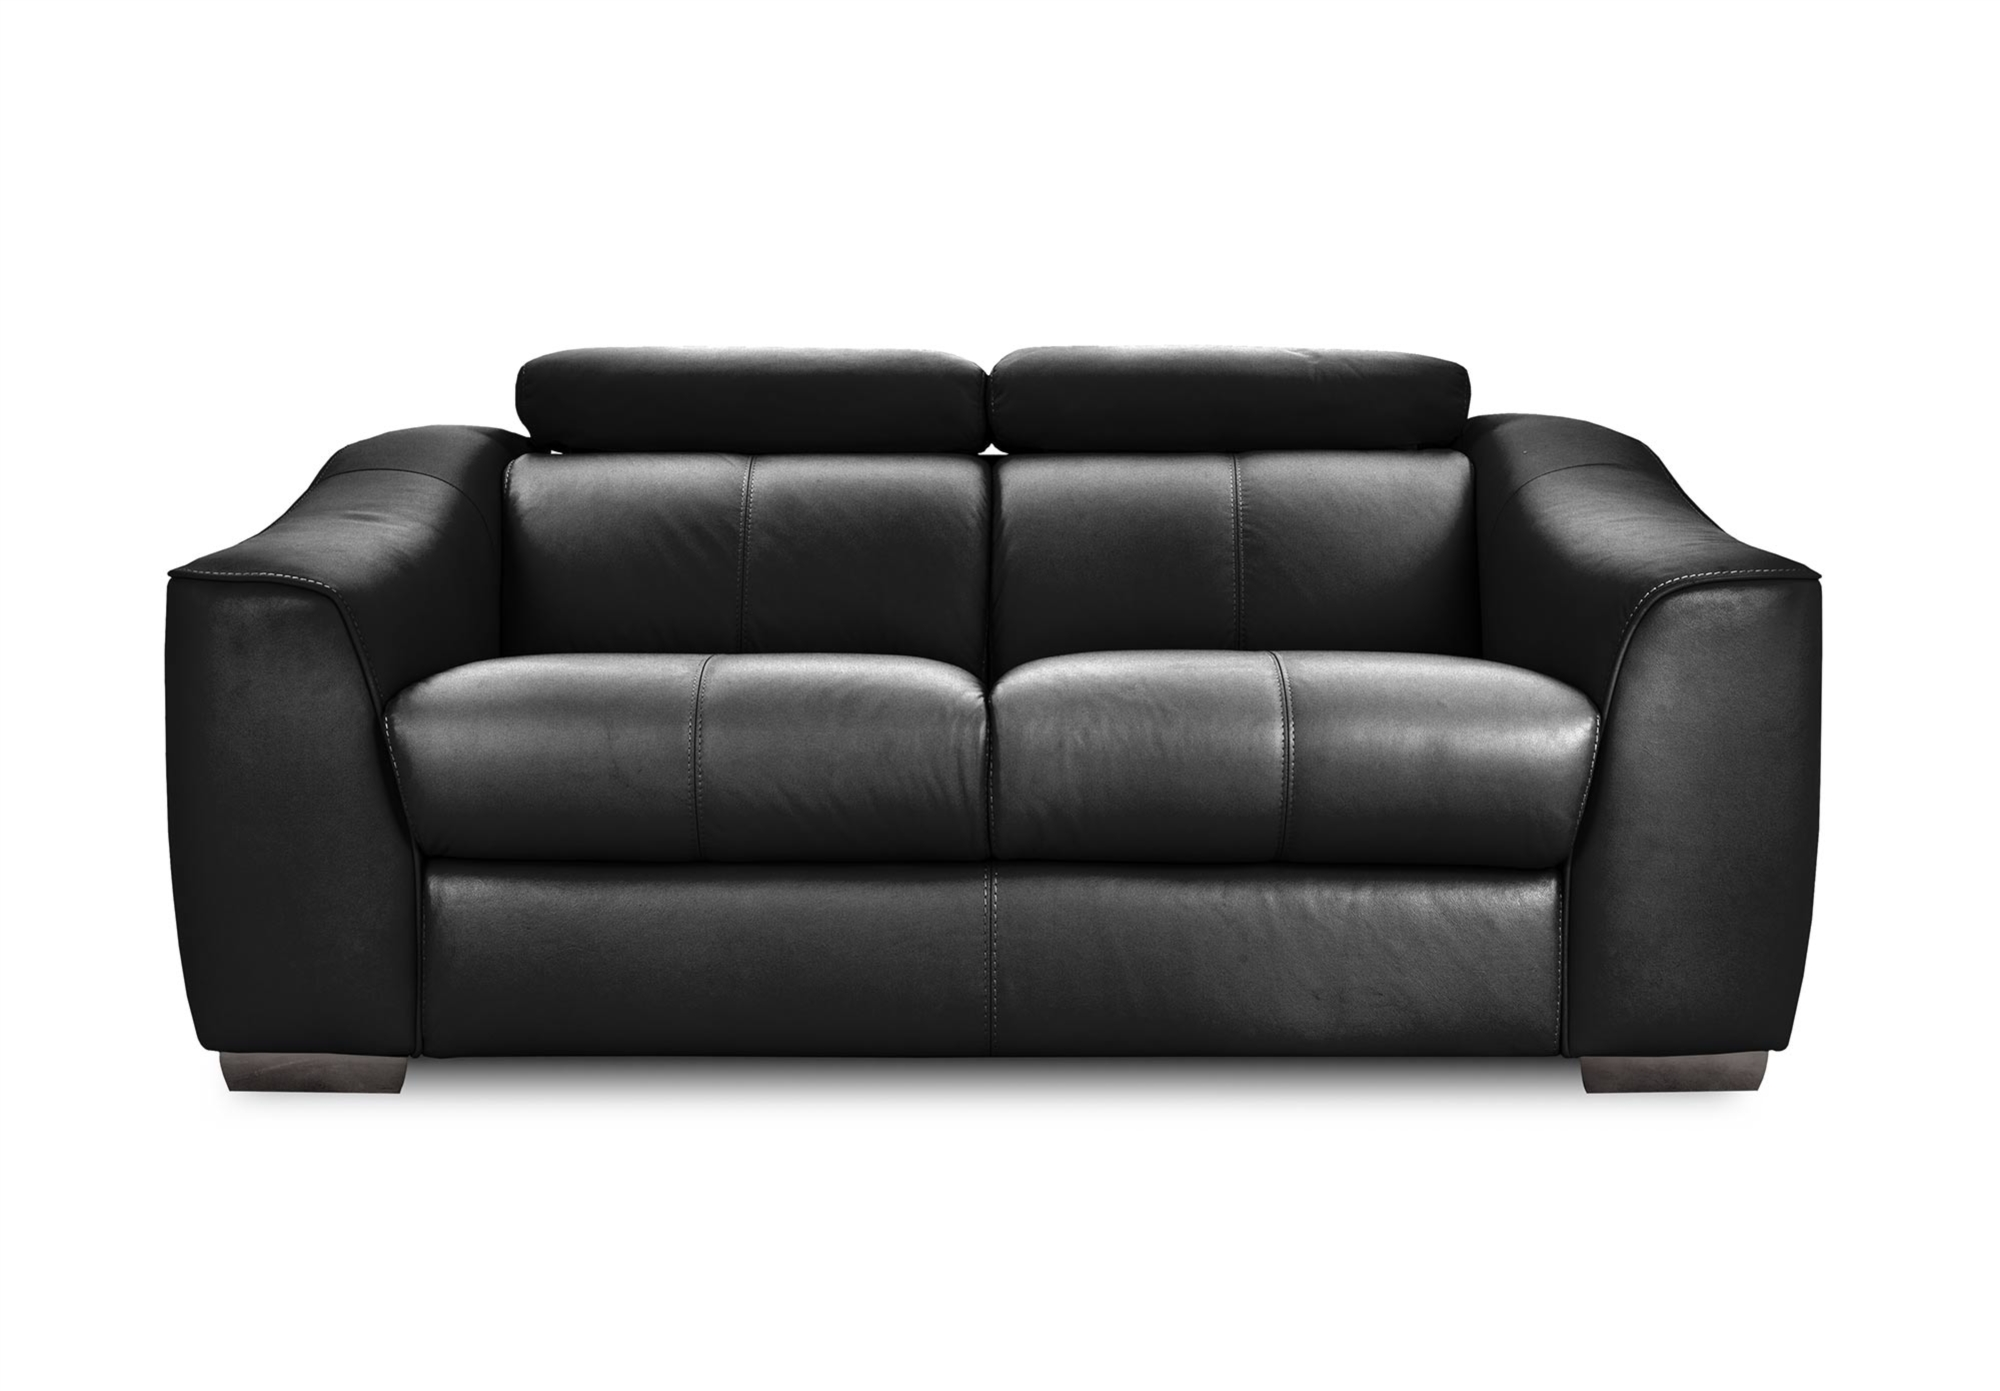 Htl leather sofas reviews refil sofa for Leather sofa reviews